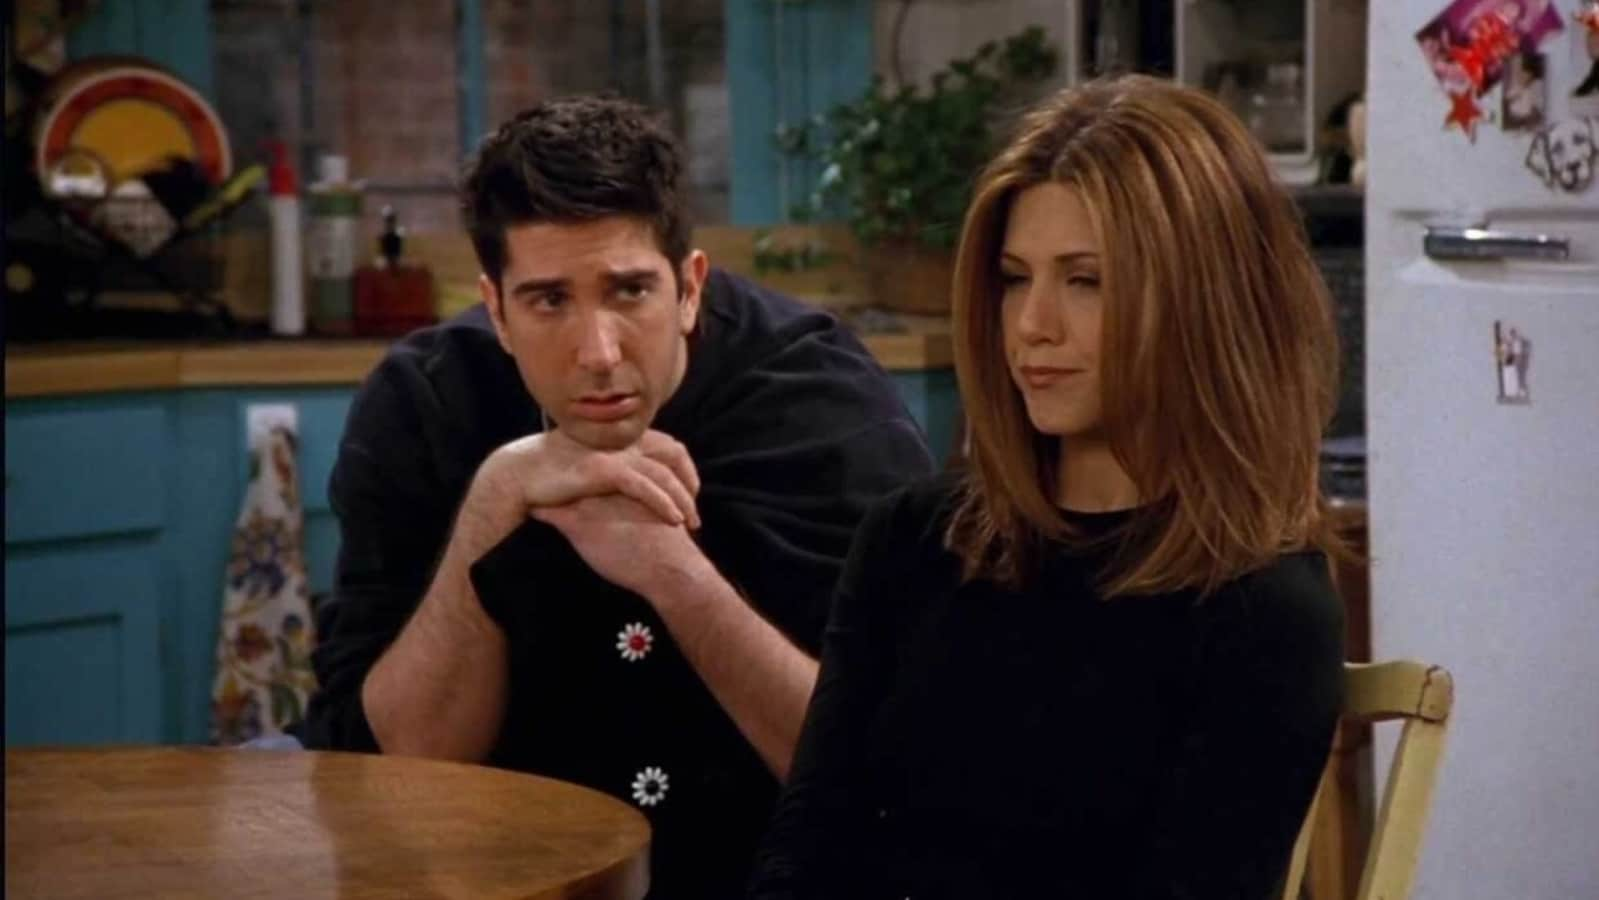 Jennifer Aniston swears she never 'banged' David Schwimmer during Friends, says  she'd 'proudly' admit it had it happened - Hindustan Times